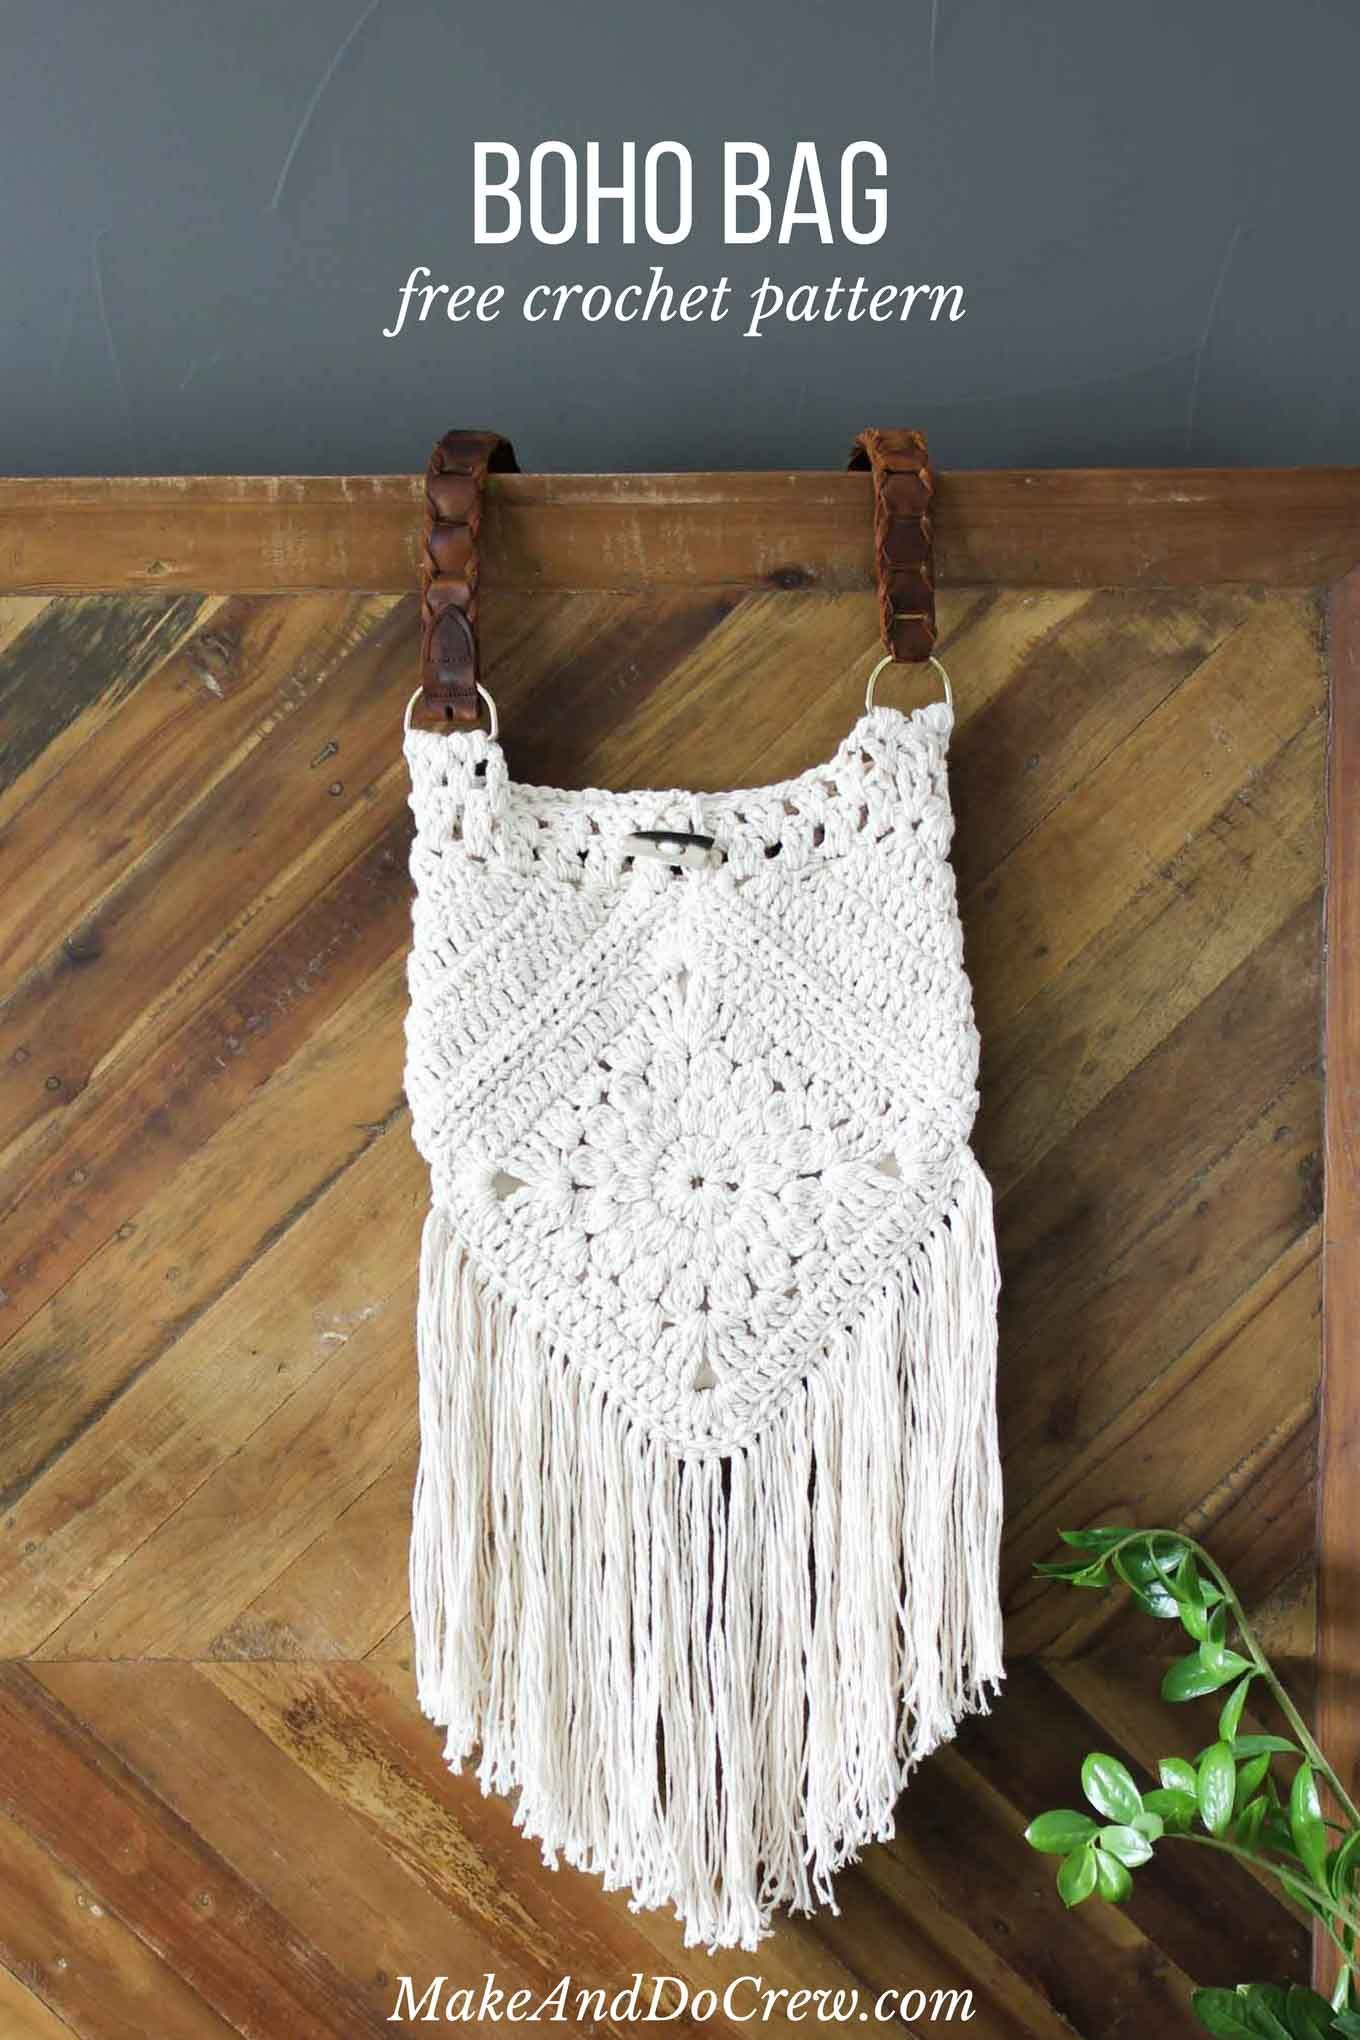 347829ee9f34 This crochet boho bag would make a great summer purse. Free crochet pattern!